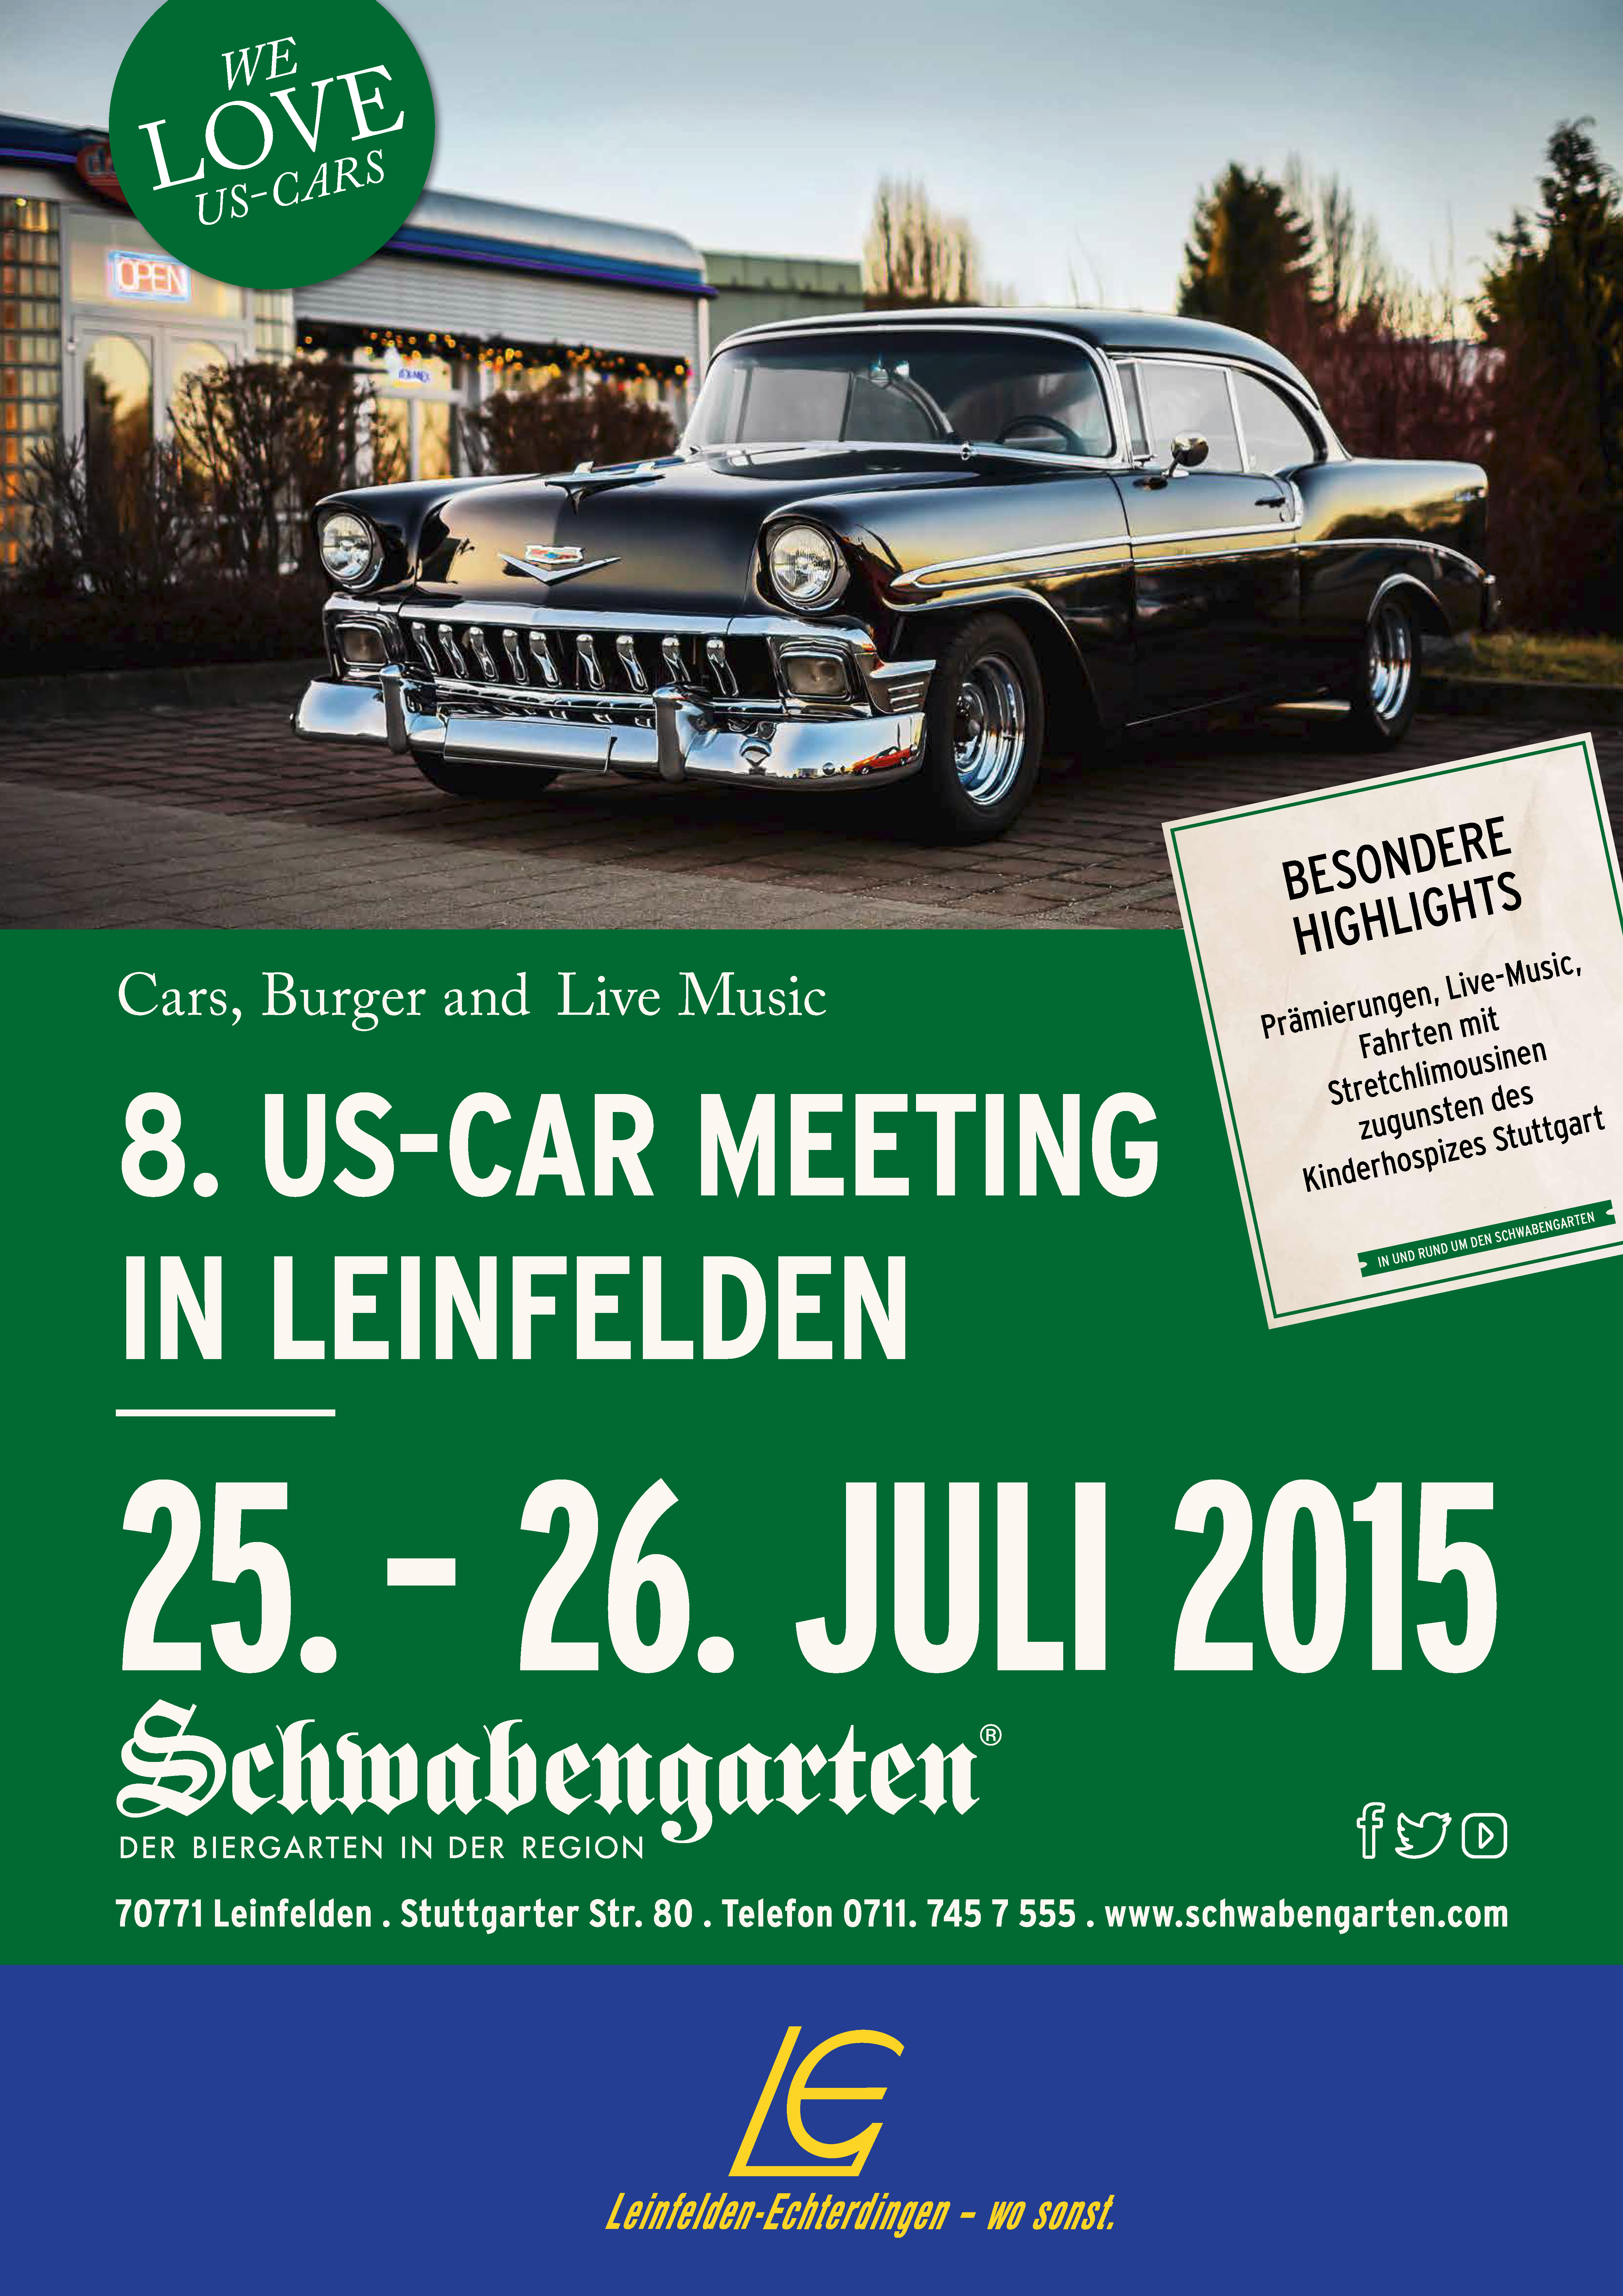 US-Car Meeting Schwabengarten 2015